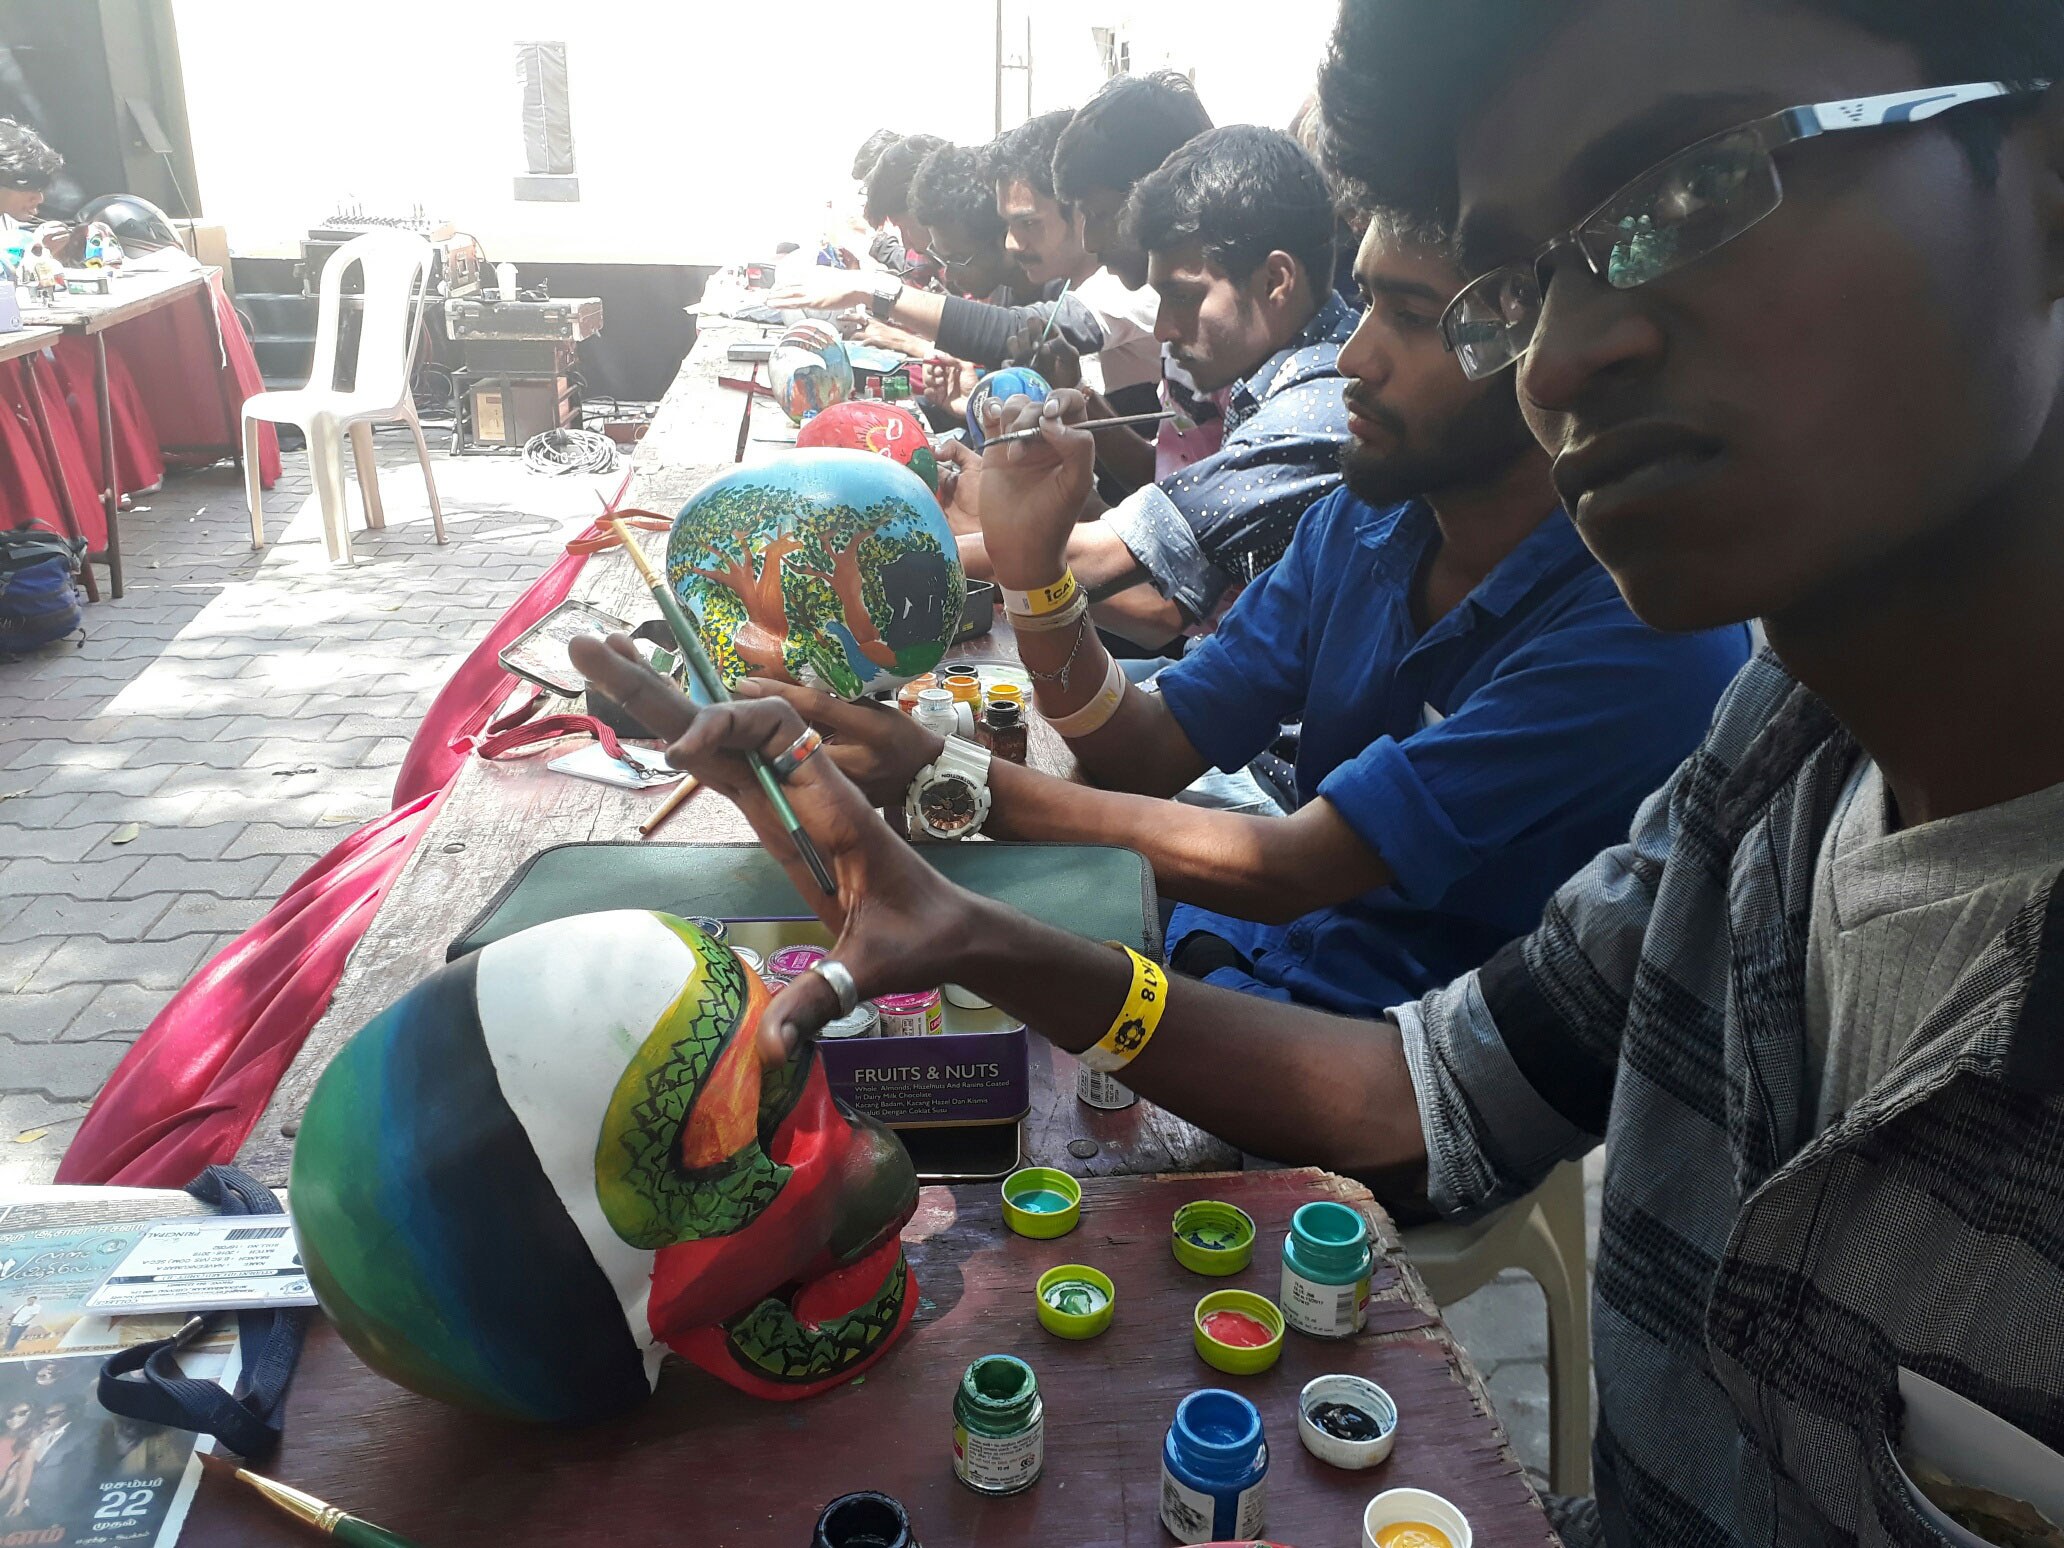 students are participating scull painting contest at miraki